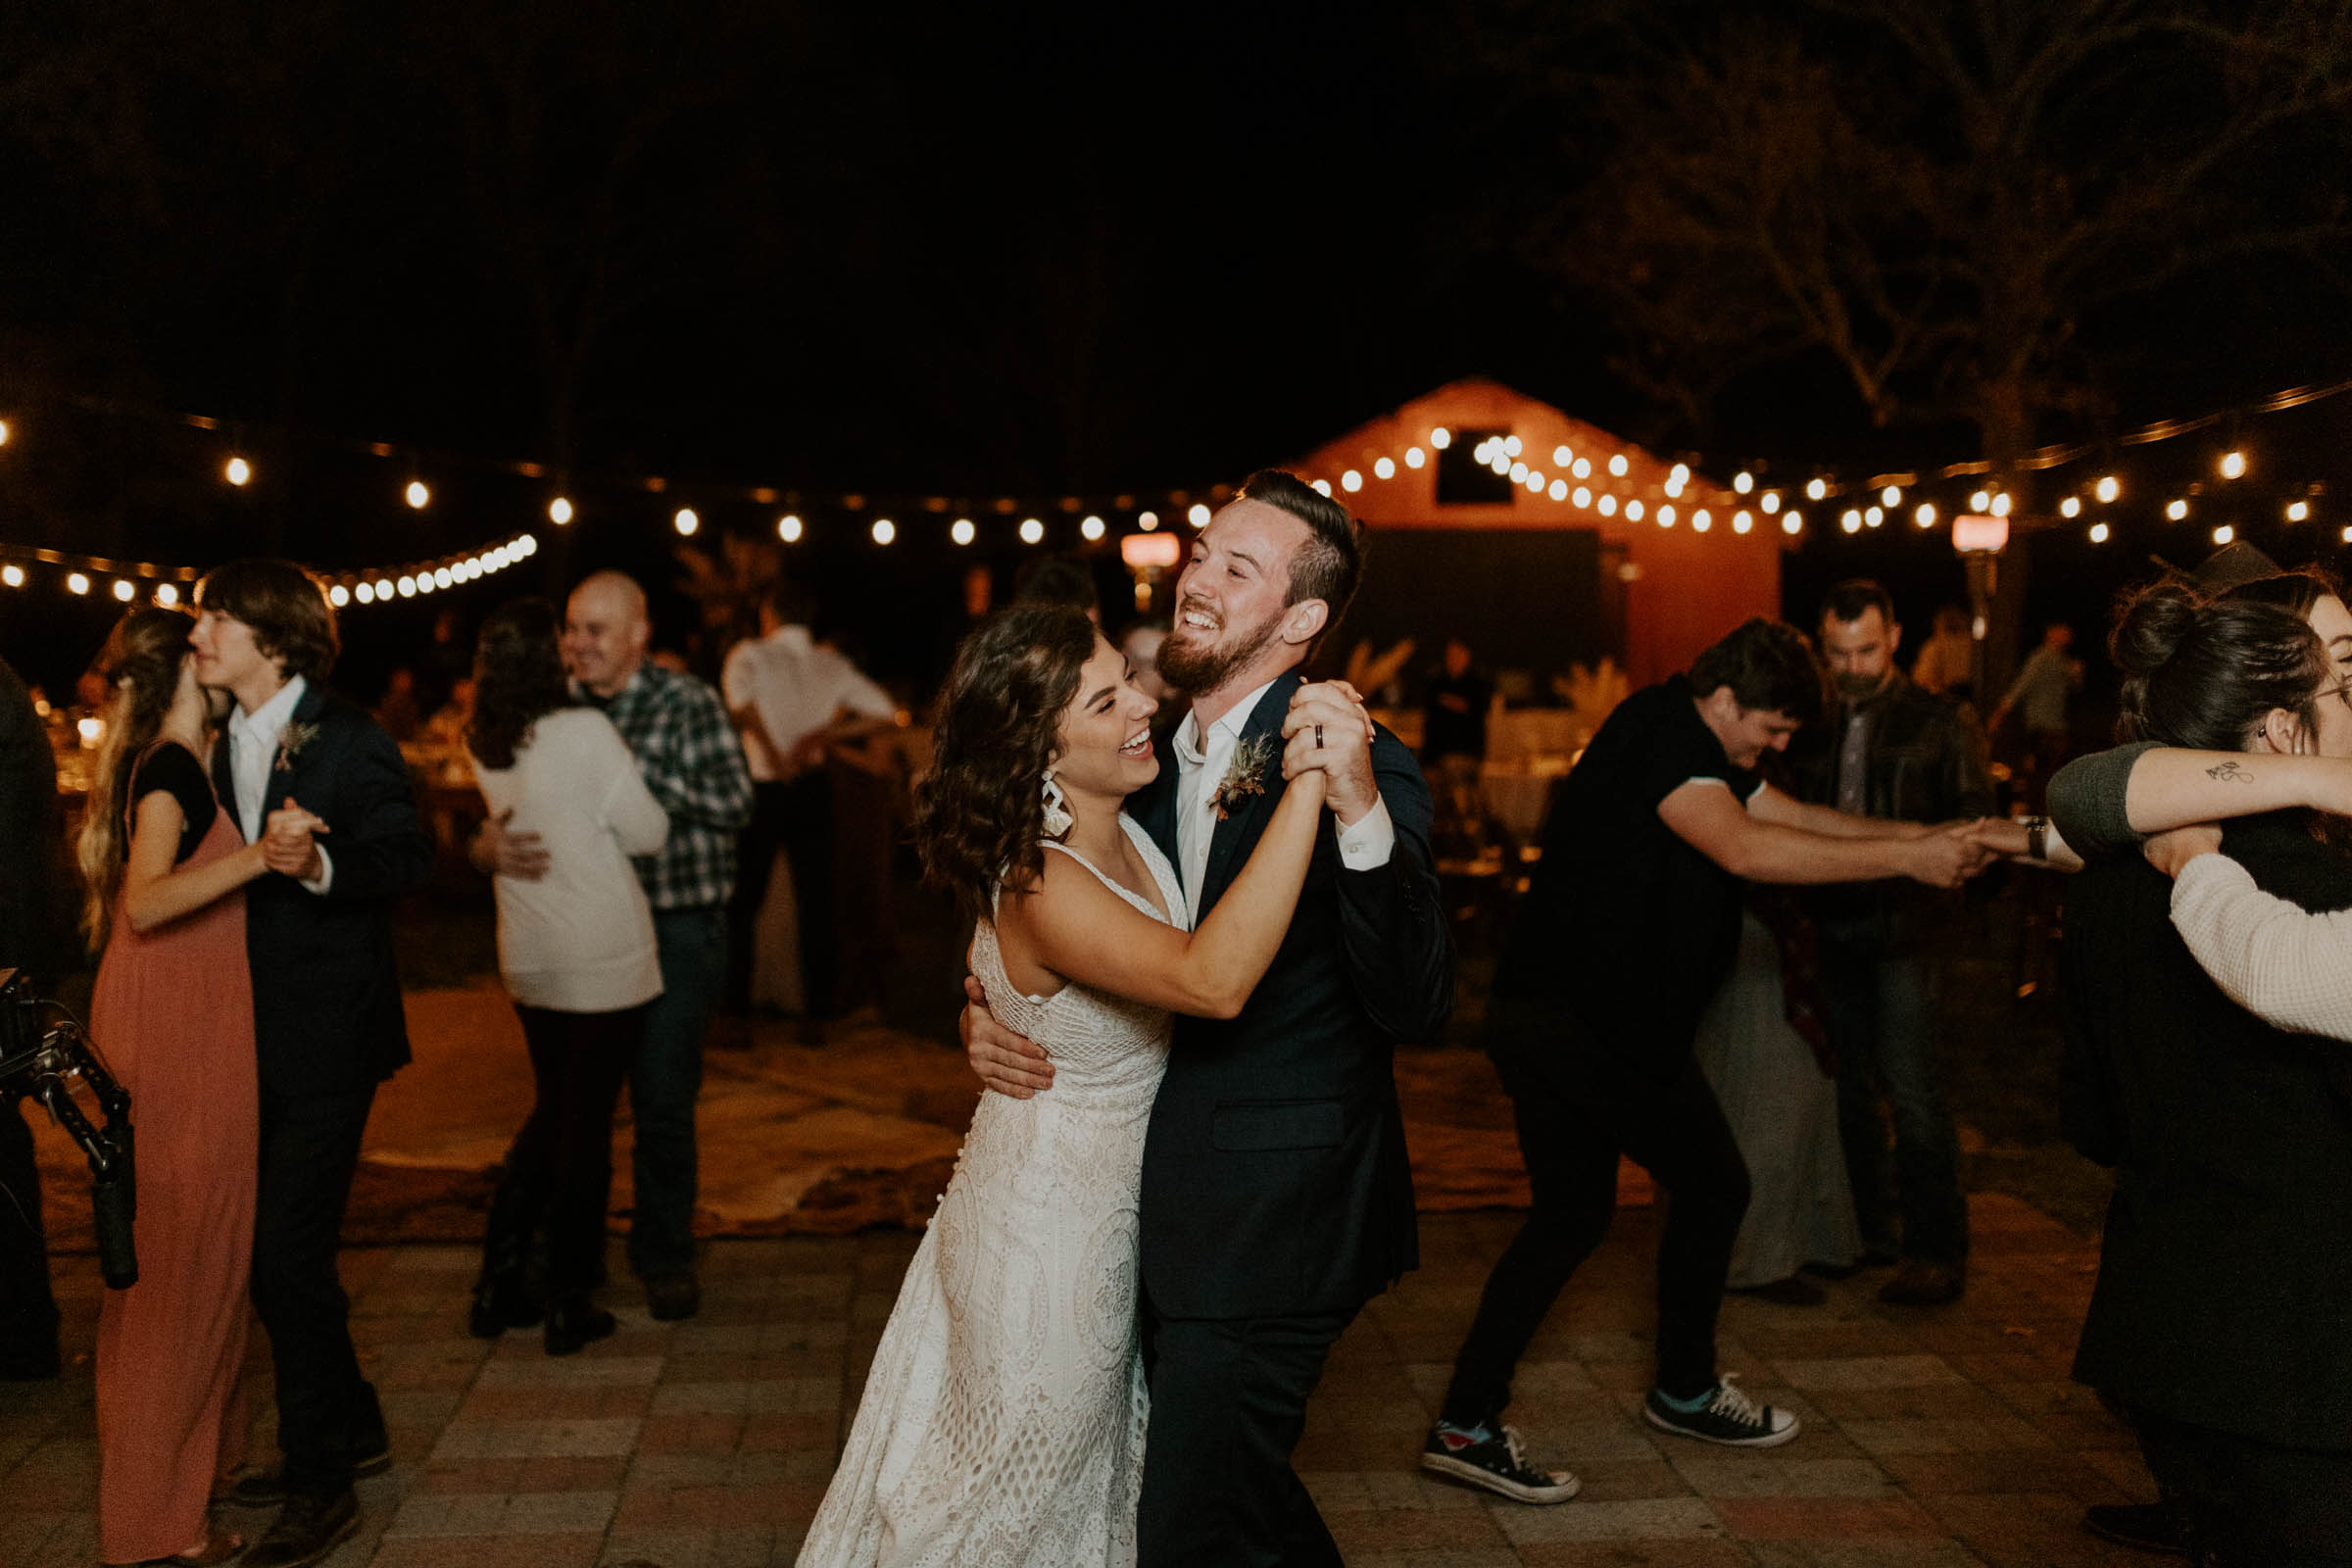 Bride and groom being goofy and dancing after dark on their wedding day